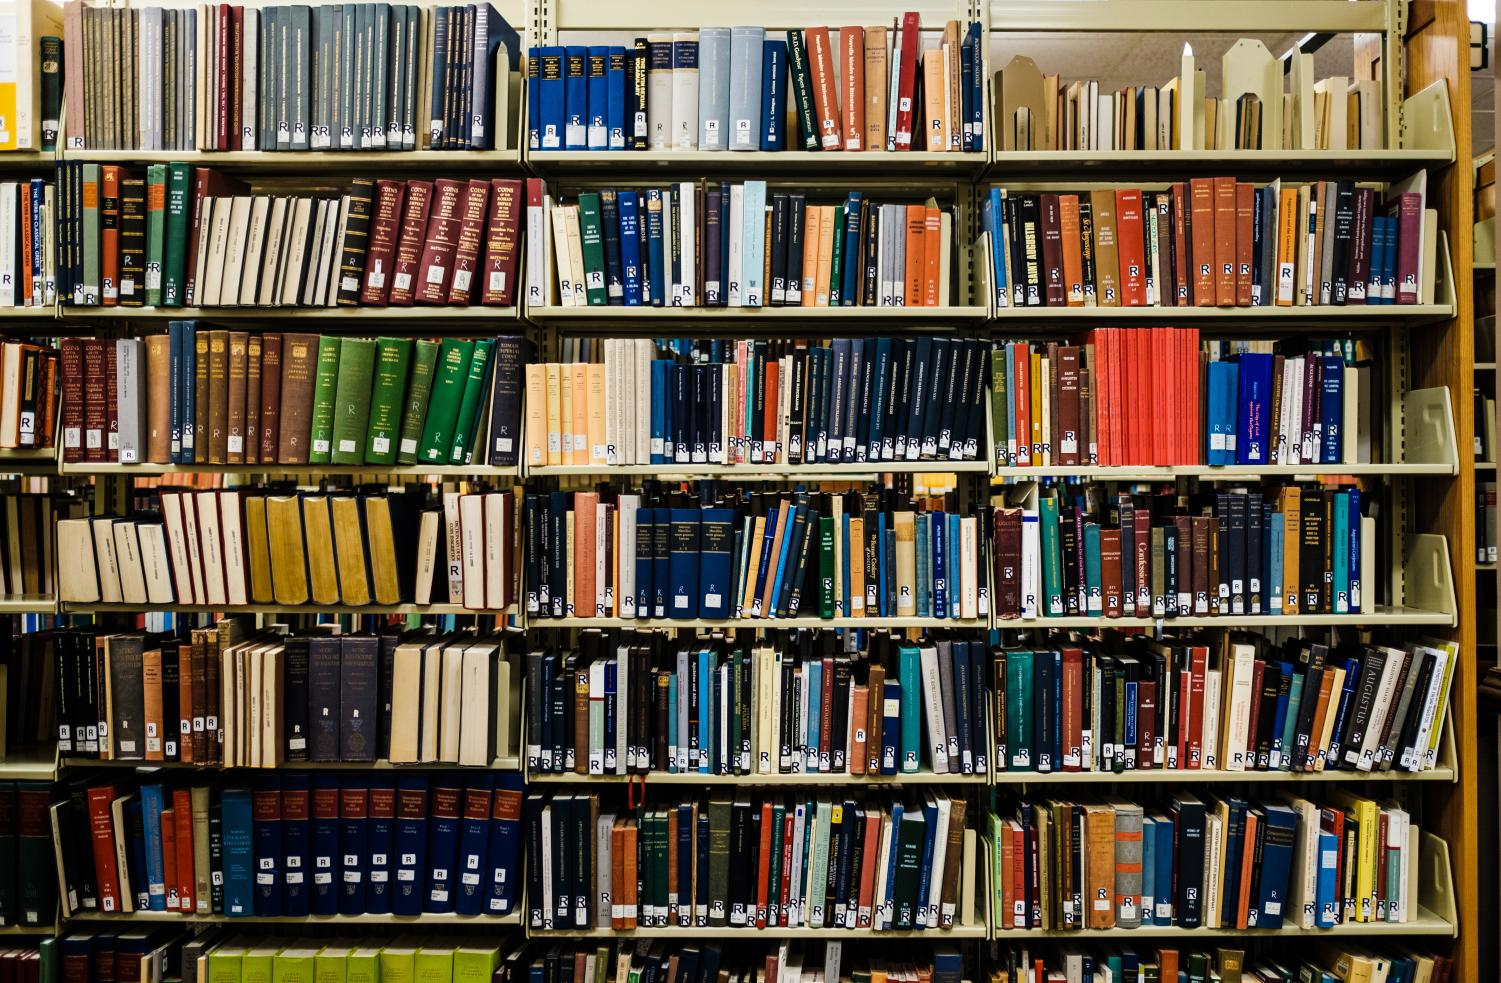 Books sit on the shelves at the Literatures and Languages Library on Tuesday. The University currently holds the title of having the second-largest research library in terms of volume and is home to the second-largest book collection in America, with over 13 million books, manuscripts and papers.